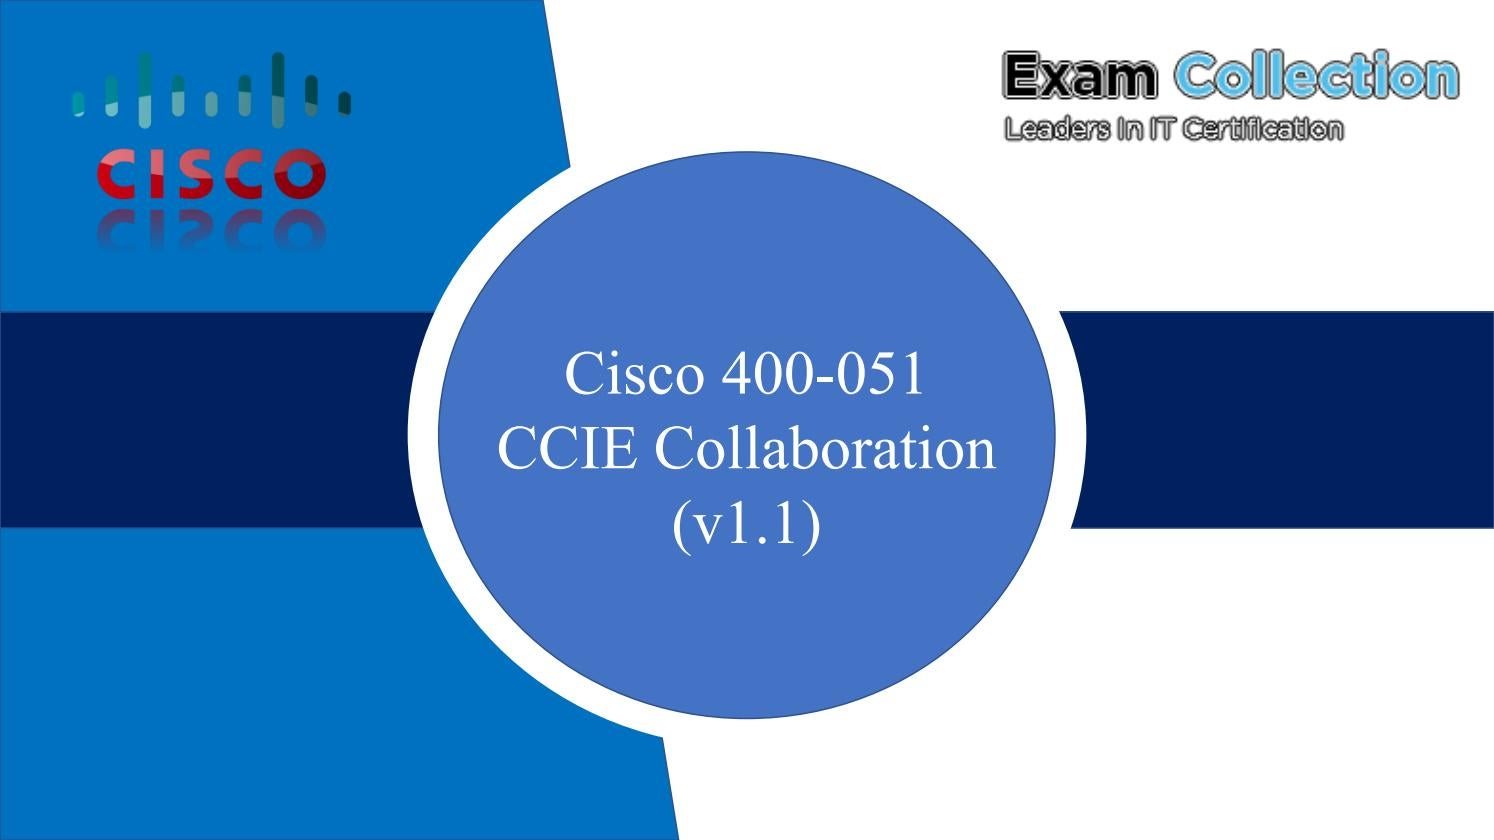 Download Cisco 400 051 Exams Free Vce Examcollection By